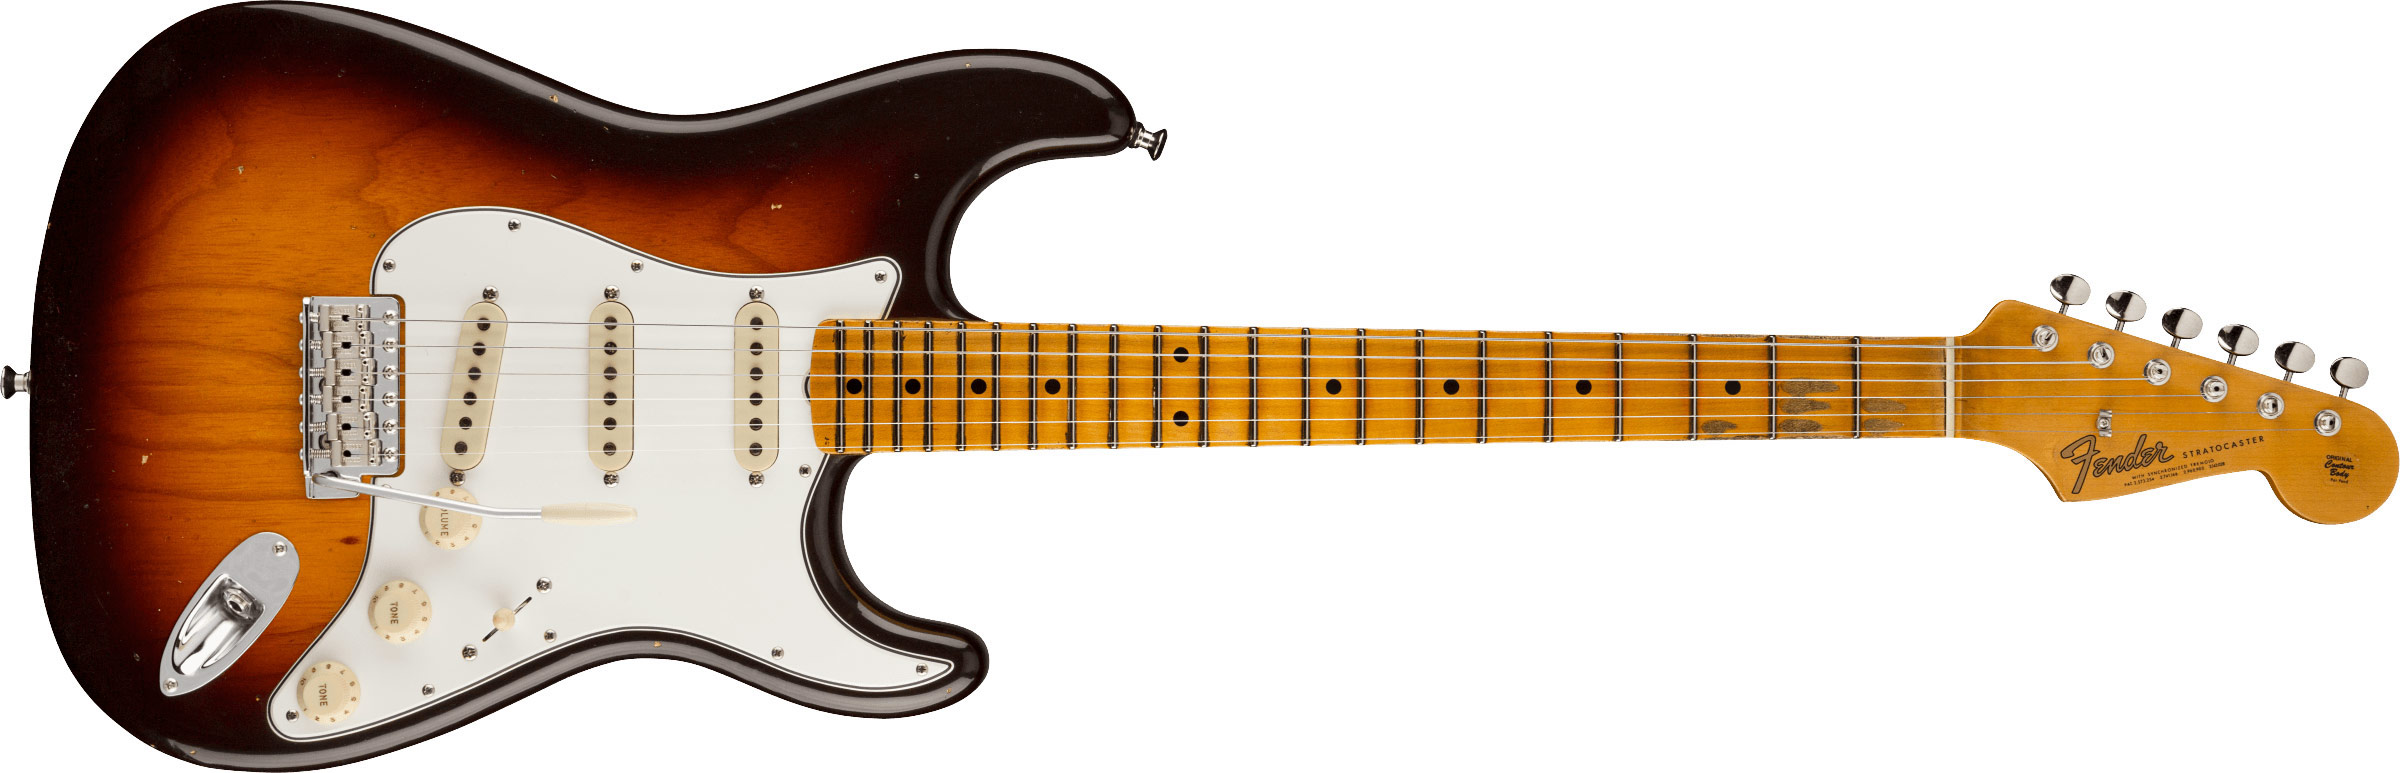 FENDER-Postmodern-Stratocaster-Journeyman-Relic-with-Closet-Classic-Hardware-Maple-Fingerboard-Wide-Fade-Chocolate-2-Color-Sunburst-sku-571005413